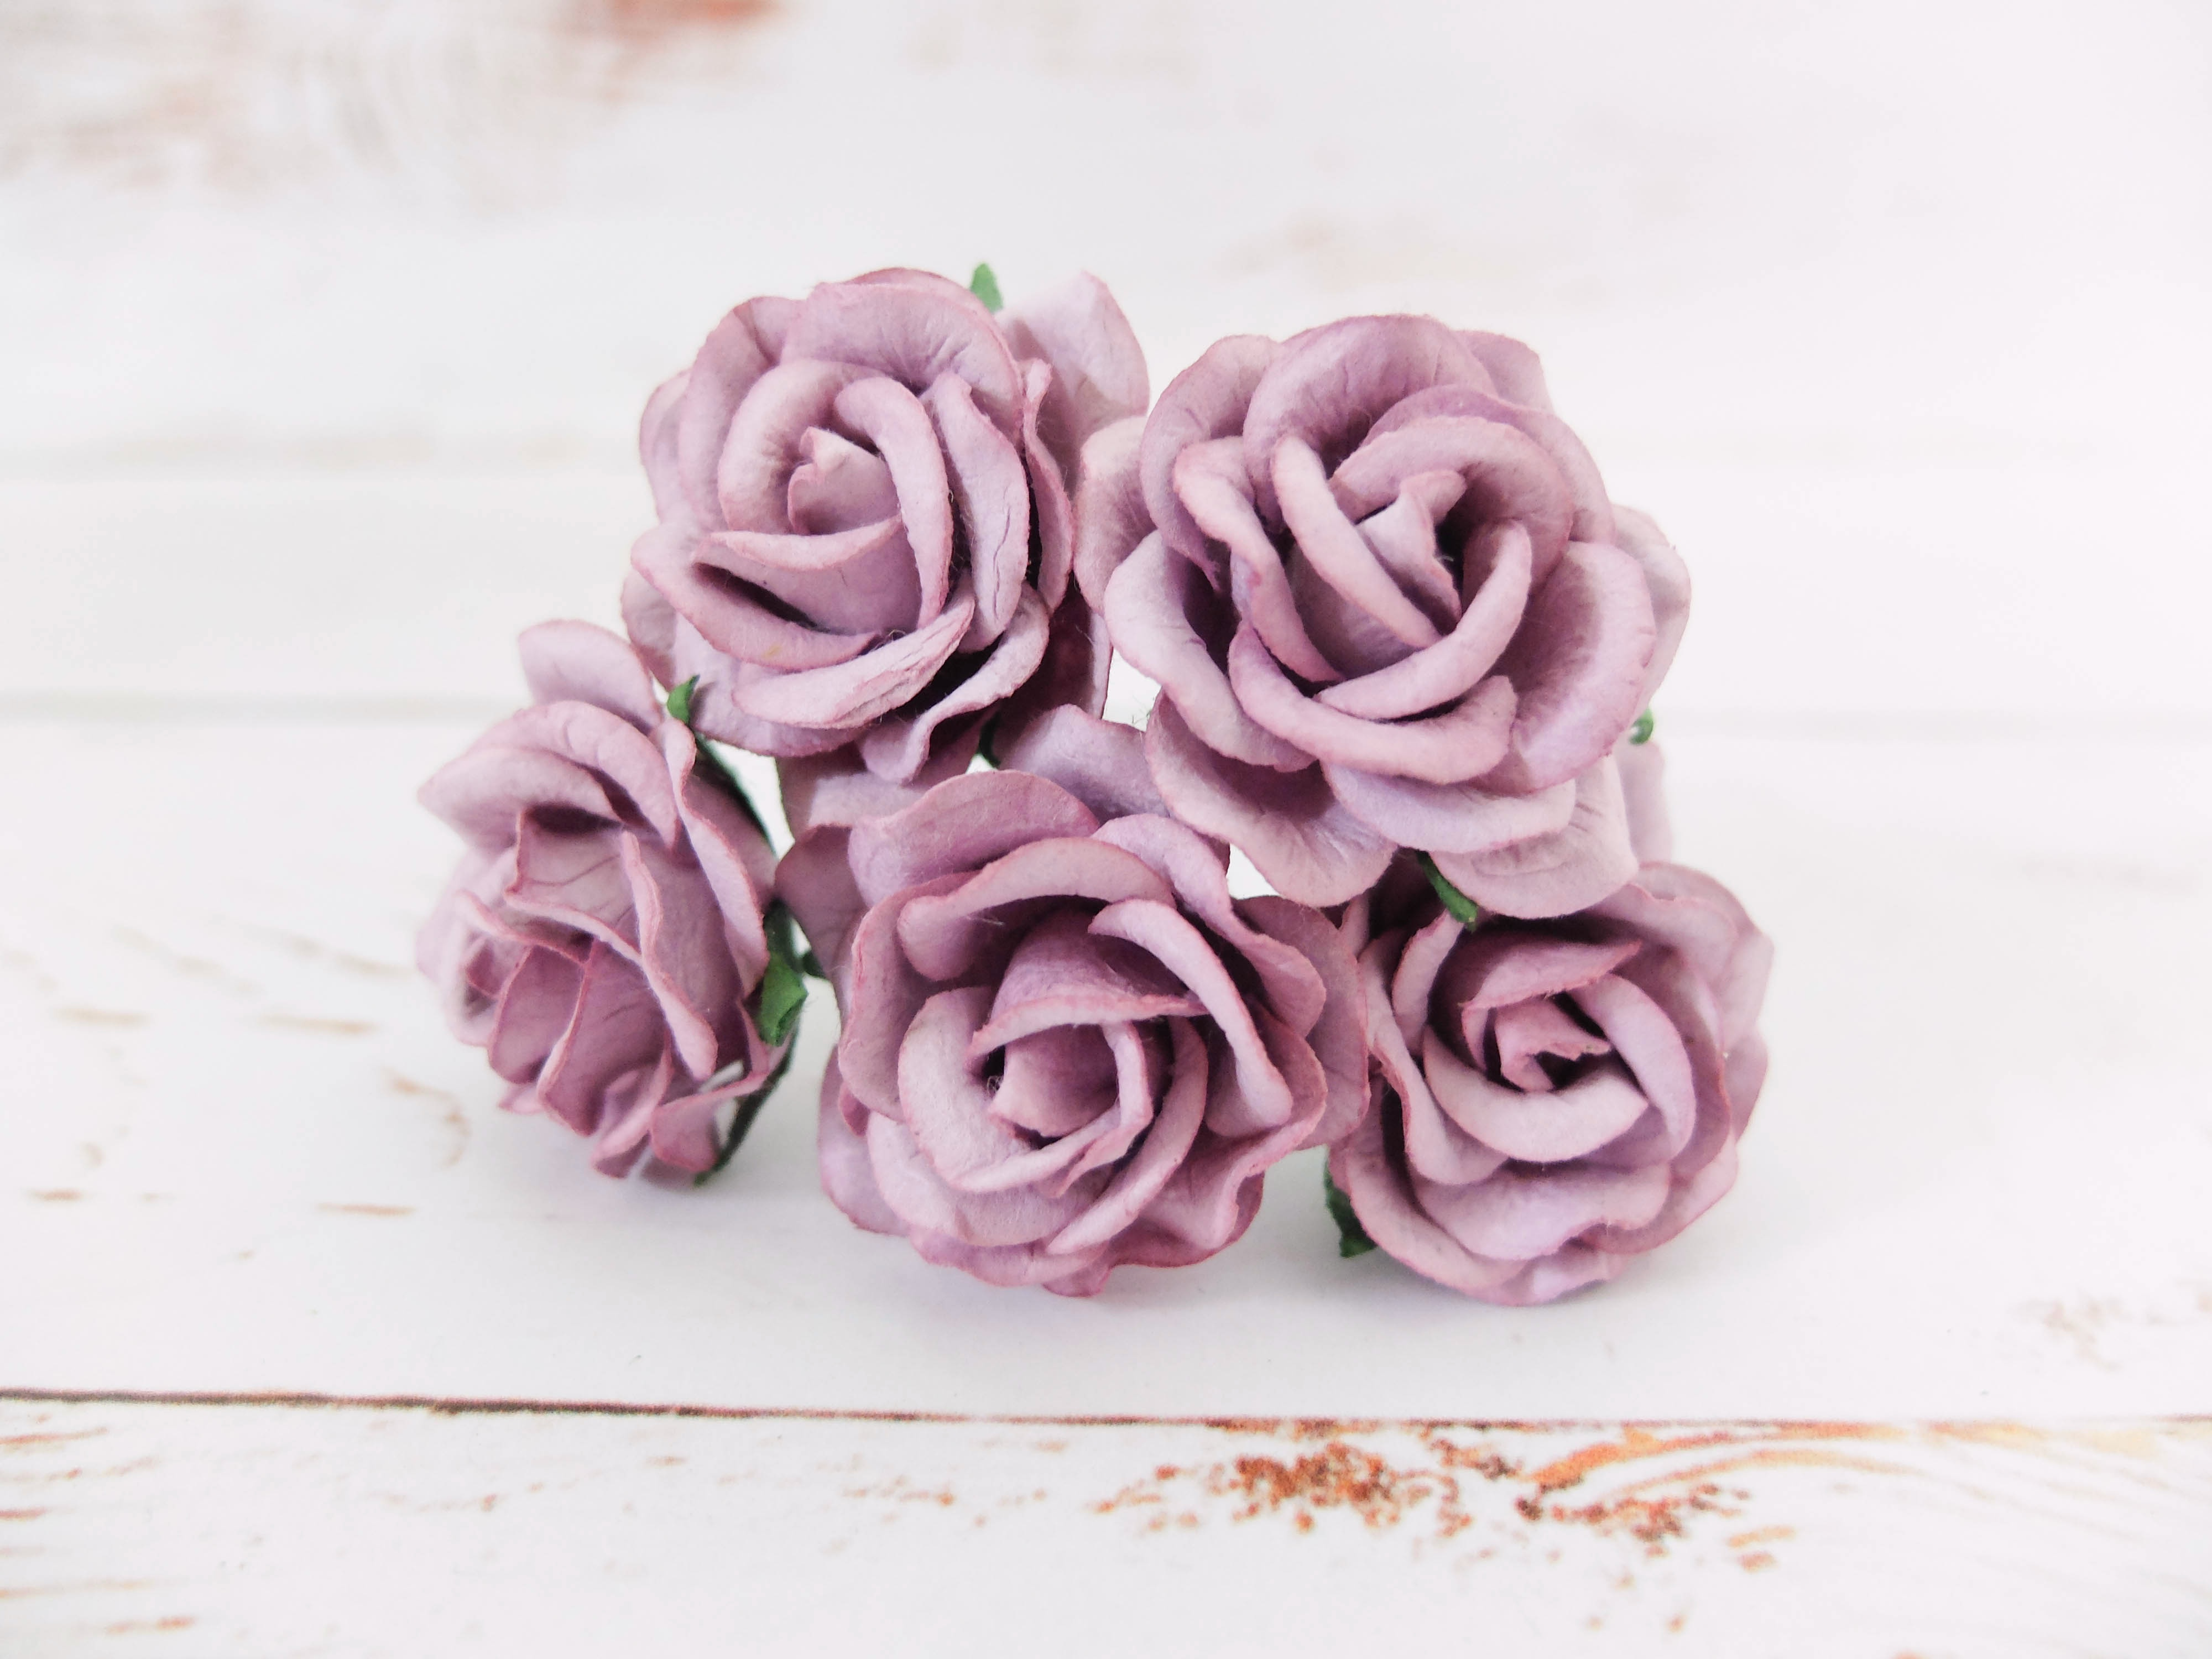 3 5 Cm Mulberry Paper Roses Flowers Wholesale From Thailand